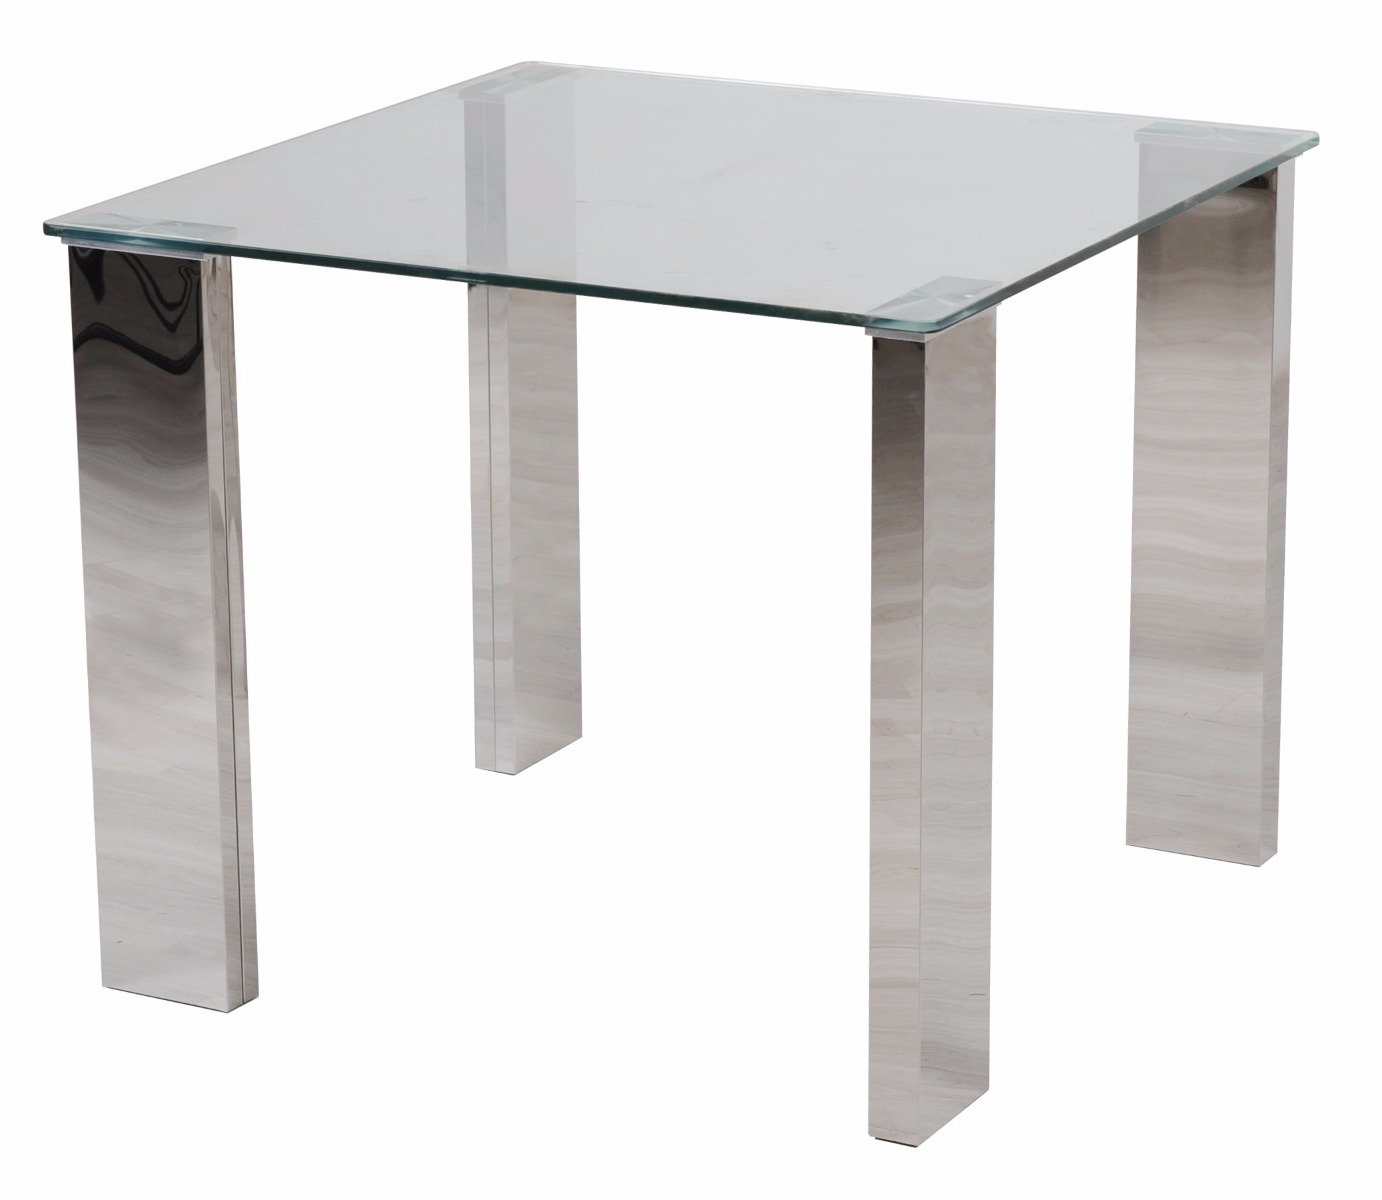 https://www.firstfurniture.co.uk/pub/media/catalog/product/d/o/dokota_dining_table_sq_2.jpg